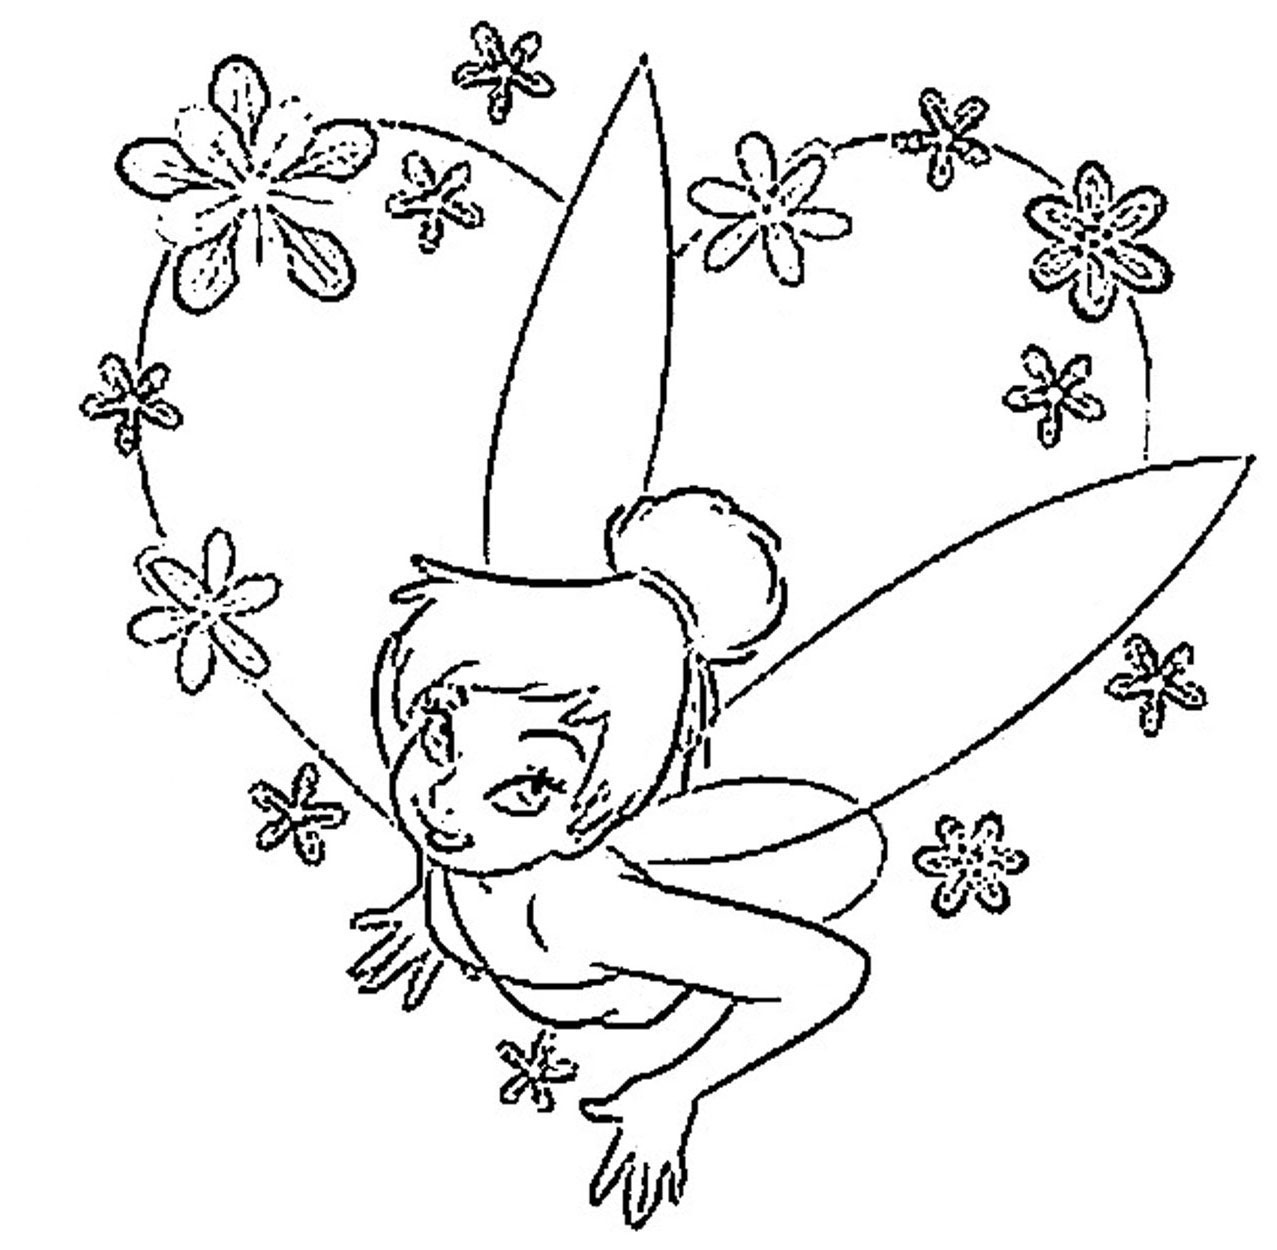 Coloring Pages Tinkerbell Coloring Pages To Print free printable tinkerbell coloring pages for kids find thousands of disney princess to print and color